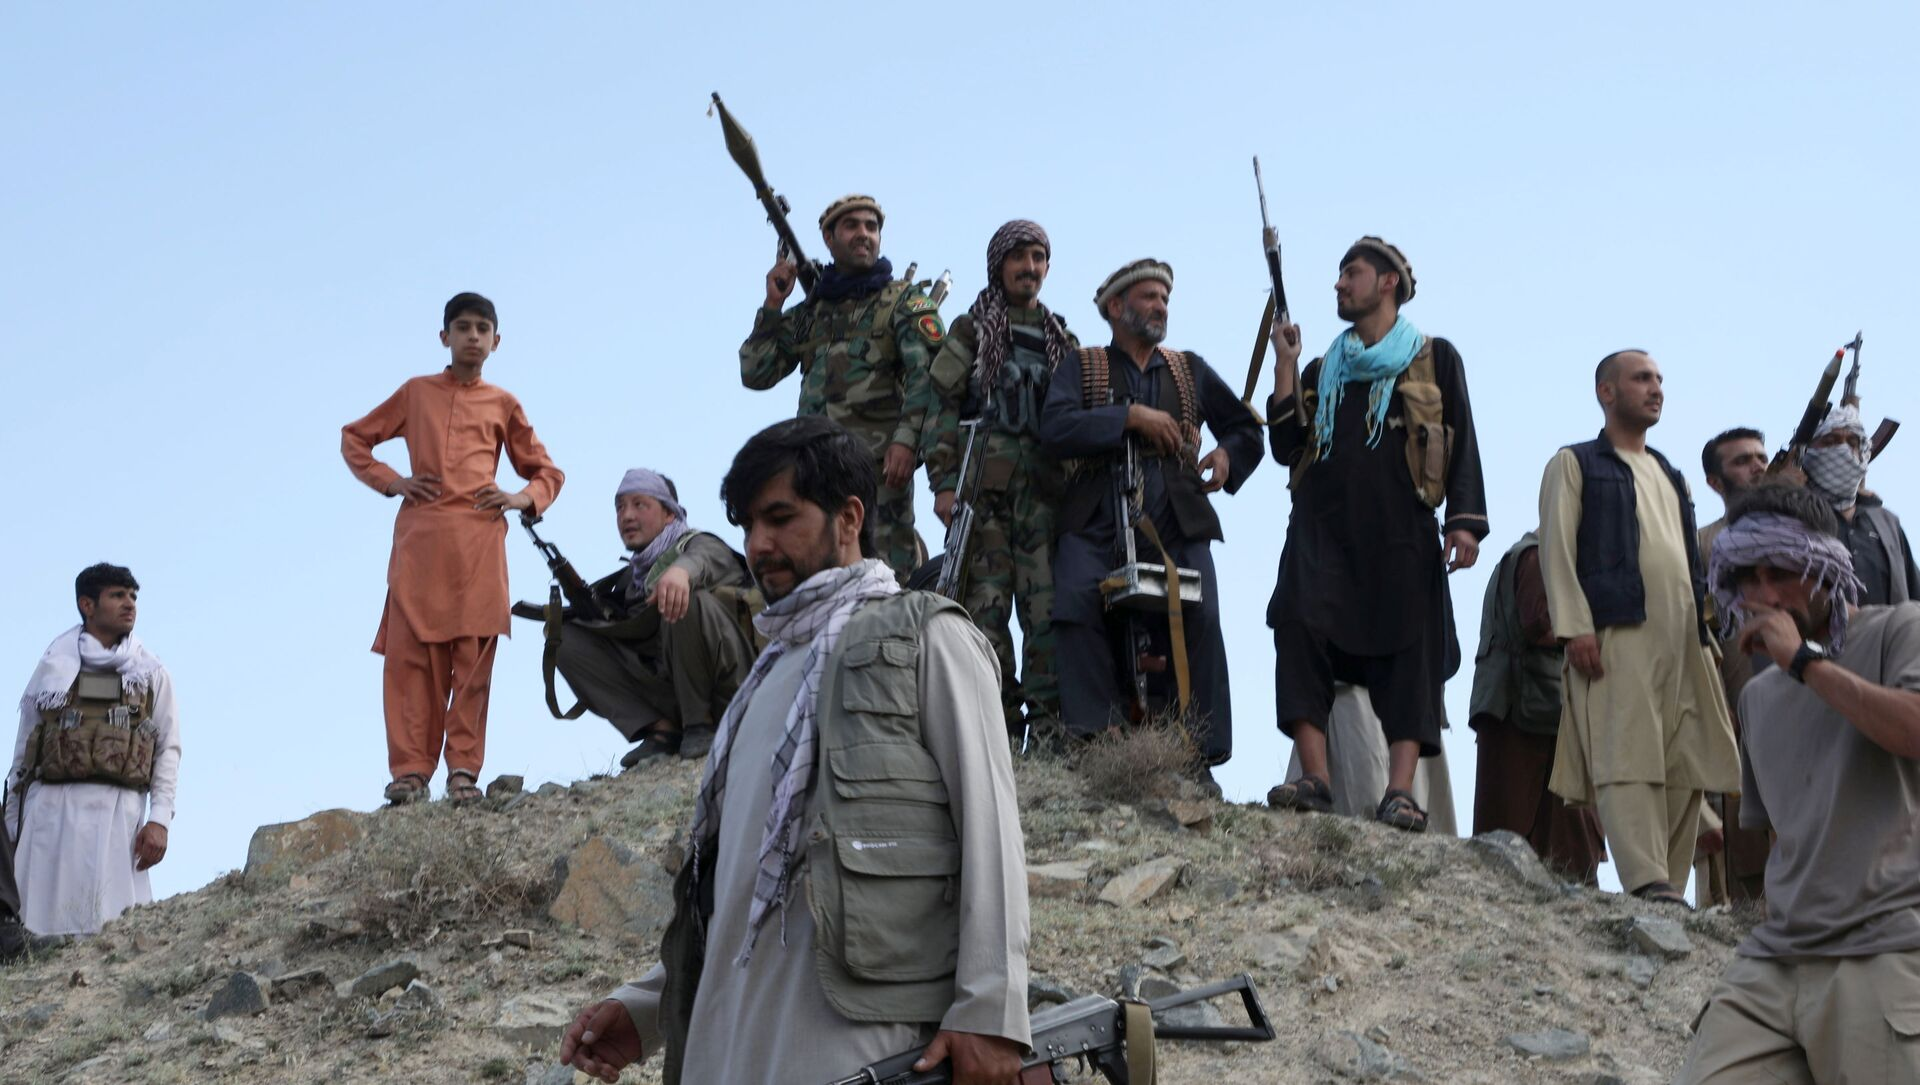 Armed men attend a gathering to announce their support for Afghan security forces and that they are ready to fight against the Taliban, on the outskirts of Kabul, Afghanistan June 23, 2021 - Sputnik International, 1920, 29.07.2021